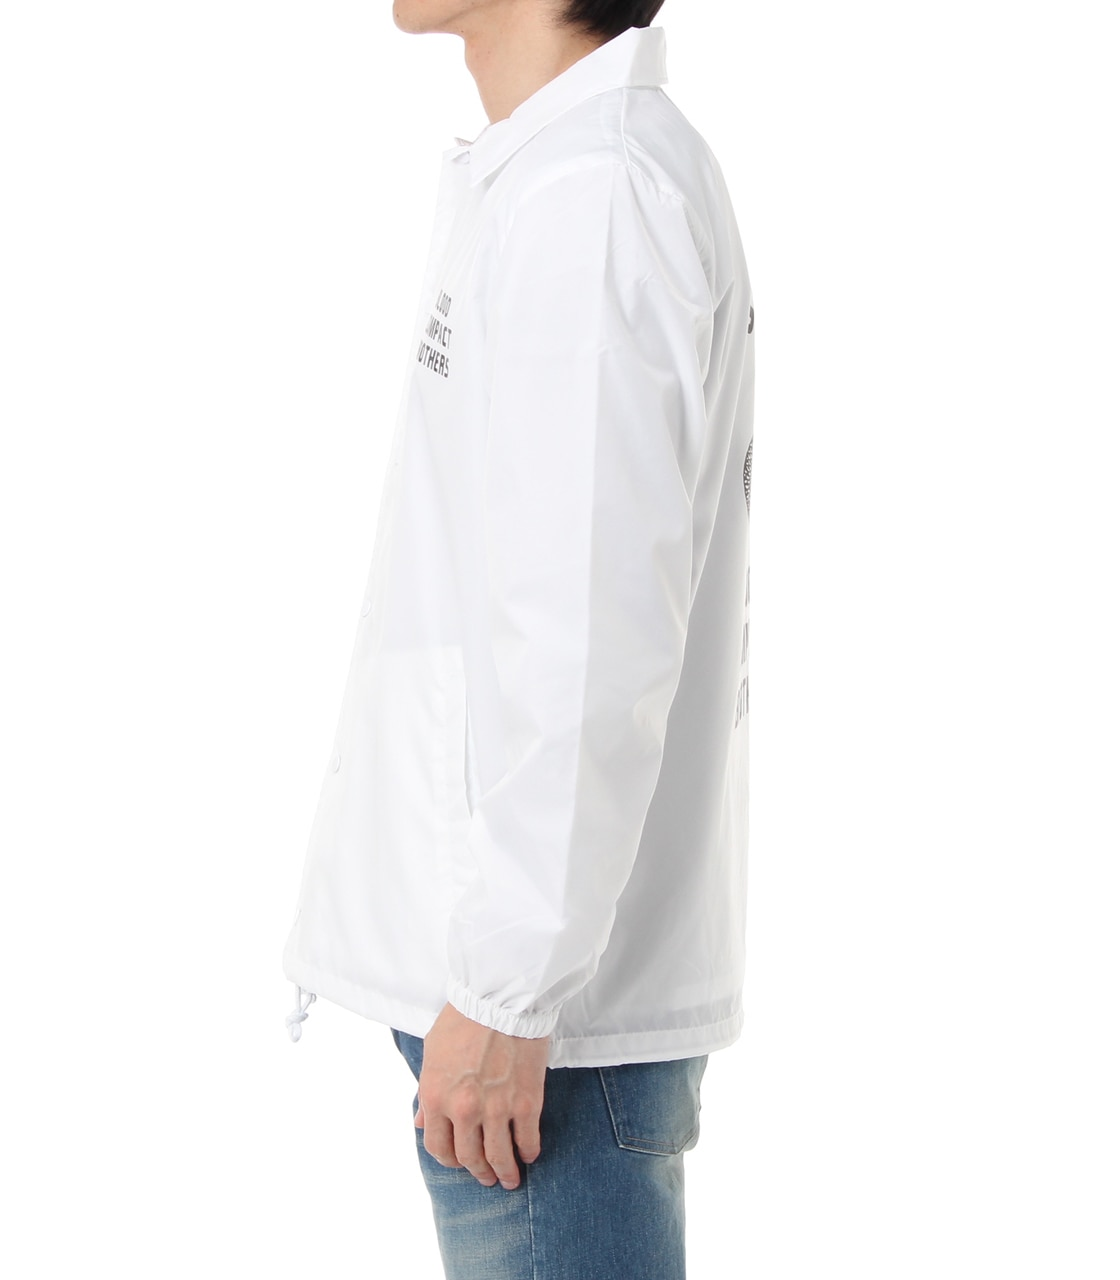 【AZUL BY MOUSSY】コブラプリント COACH JACKET 詳細画像 WHT 3